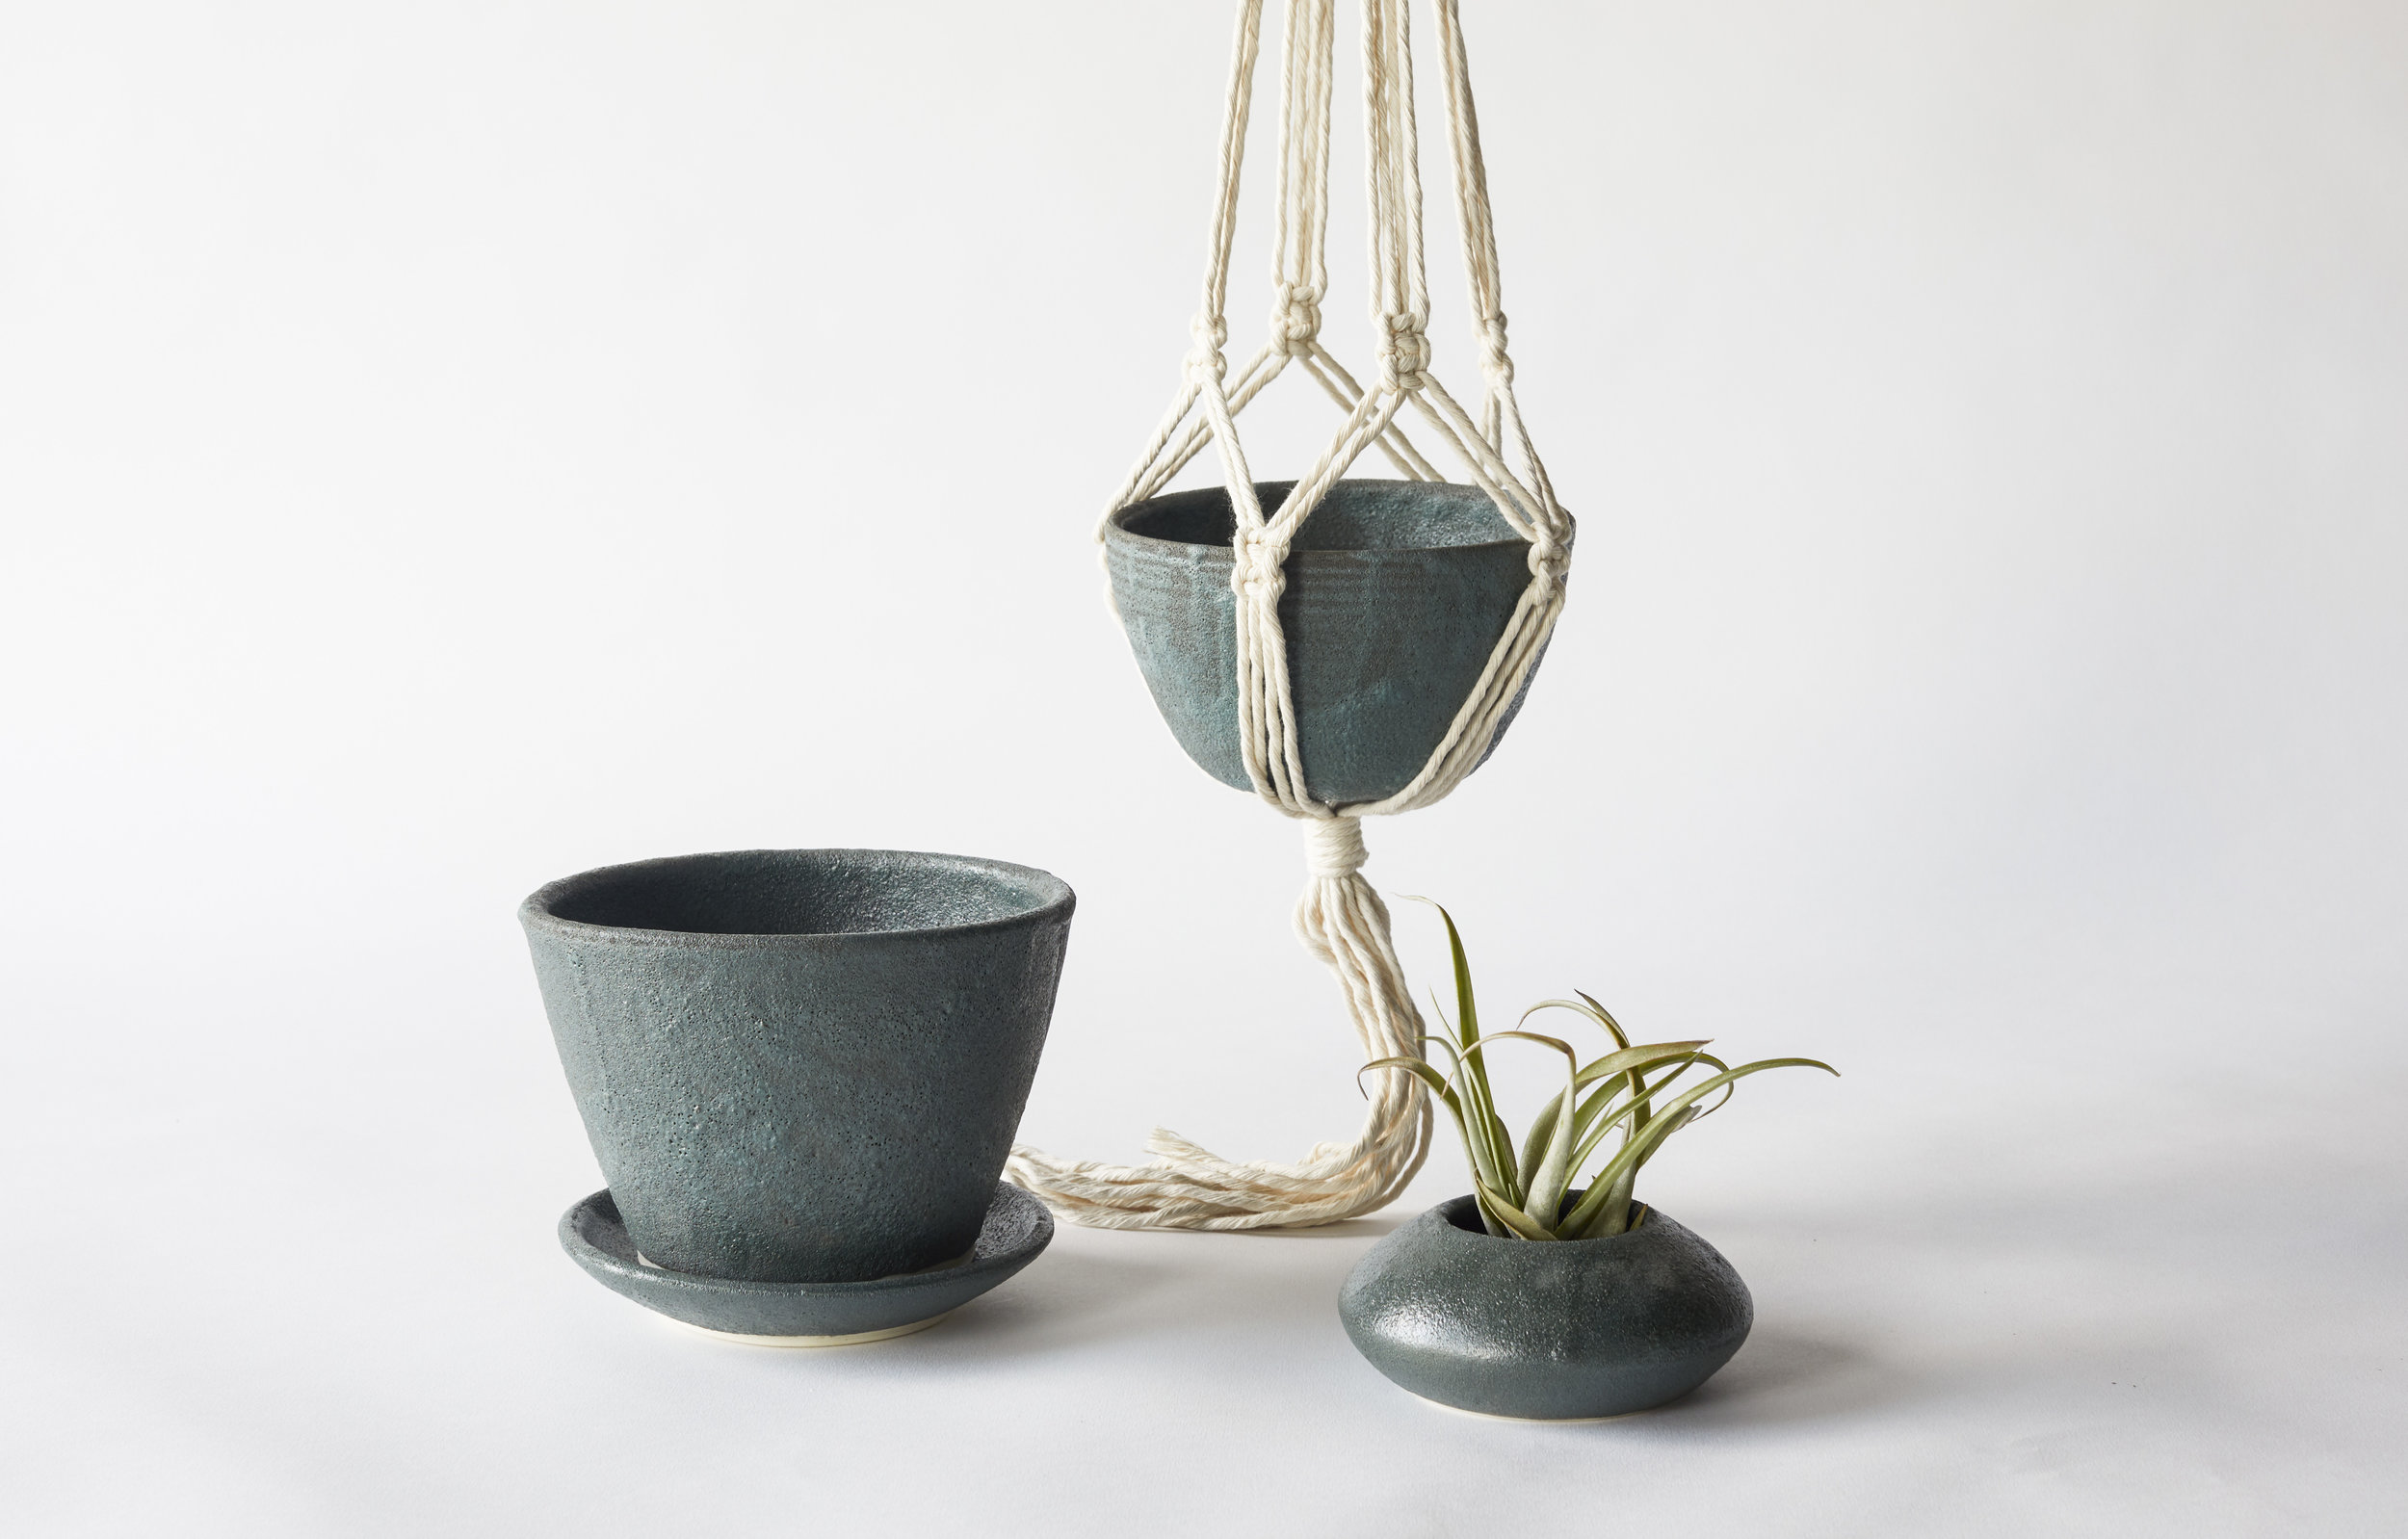 Teal Crater Planters.jpg